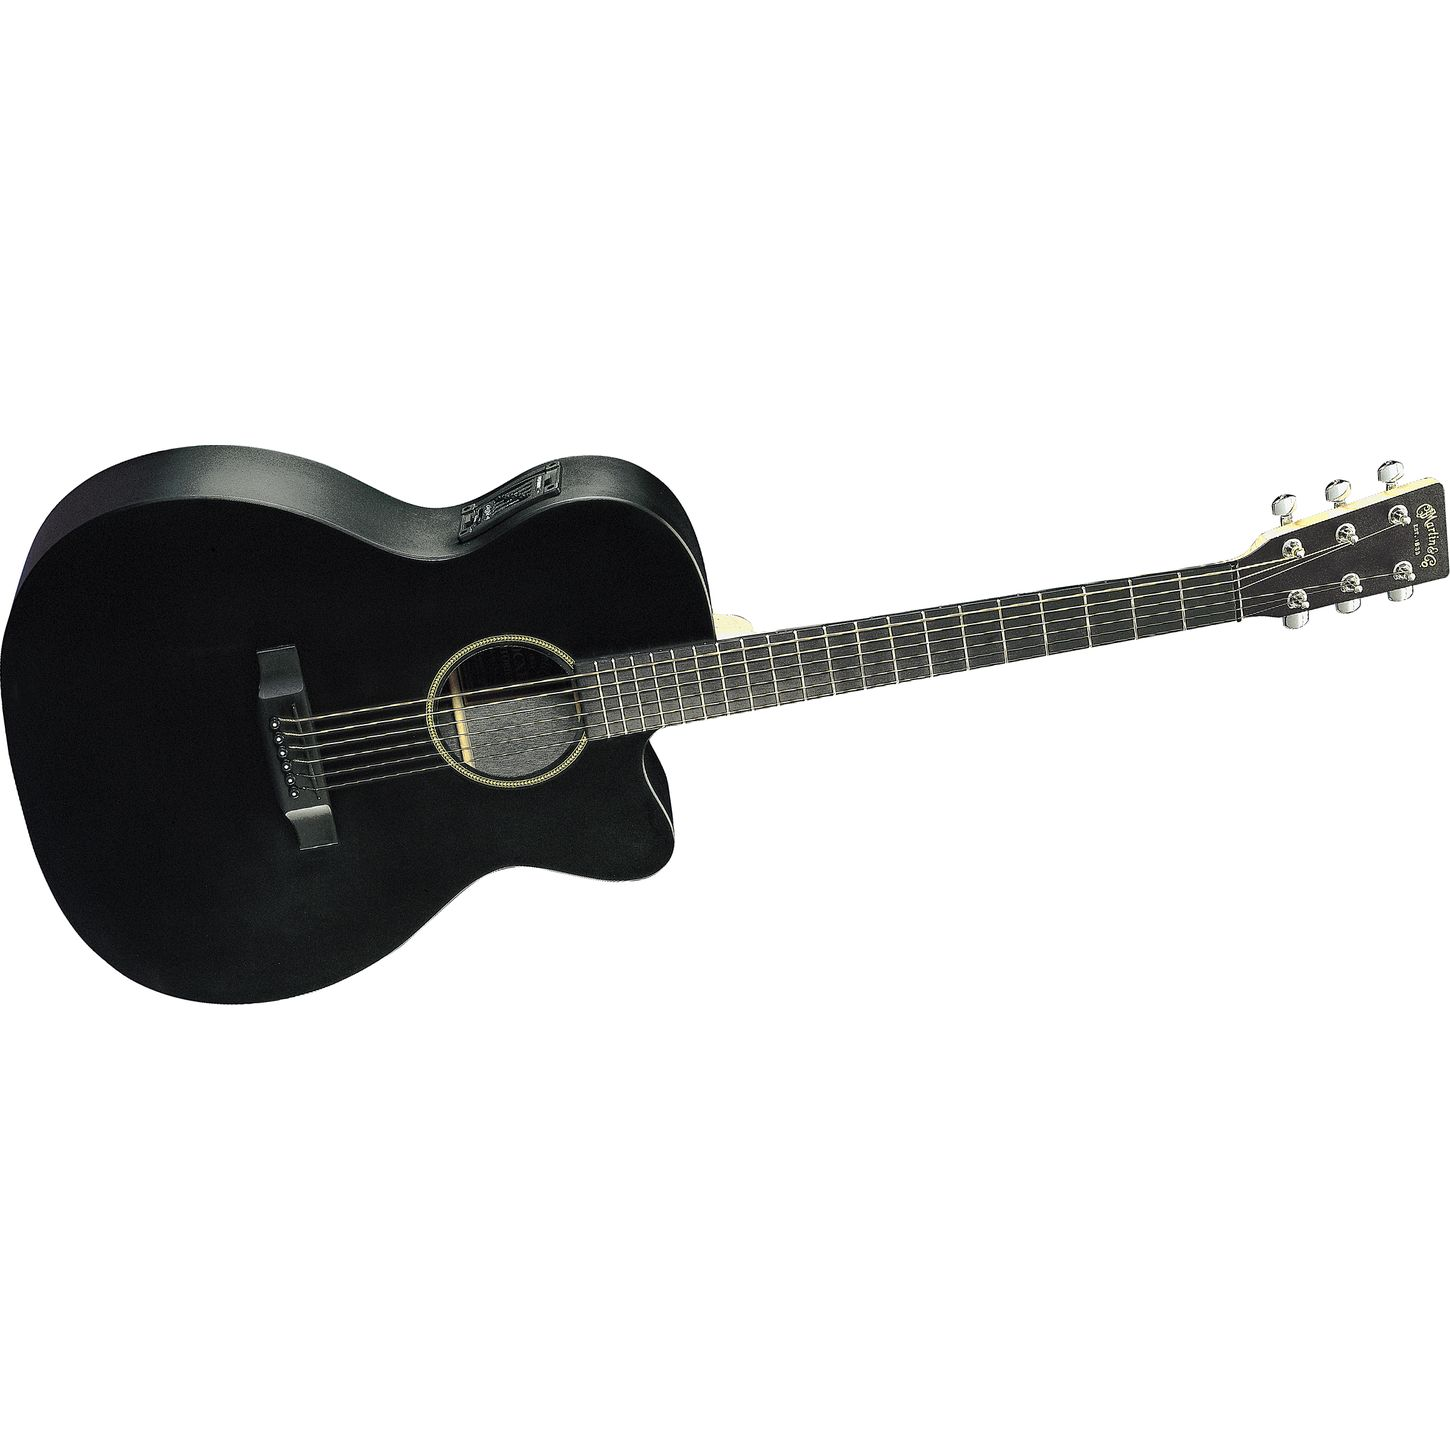 Black And Gold Chords Acoustic